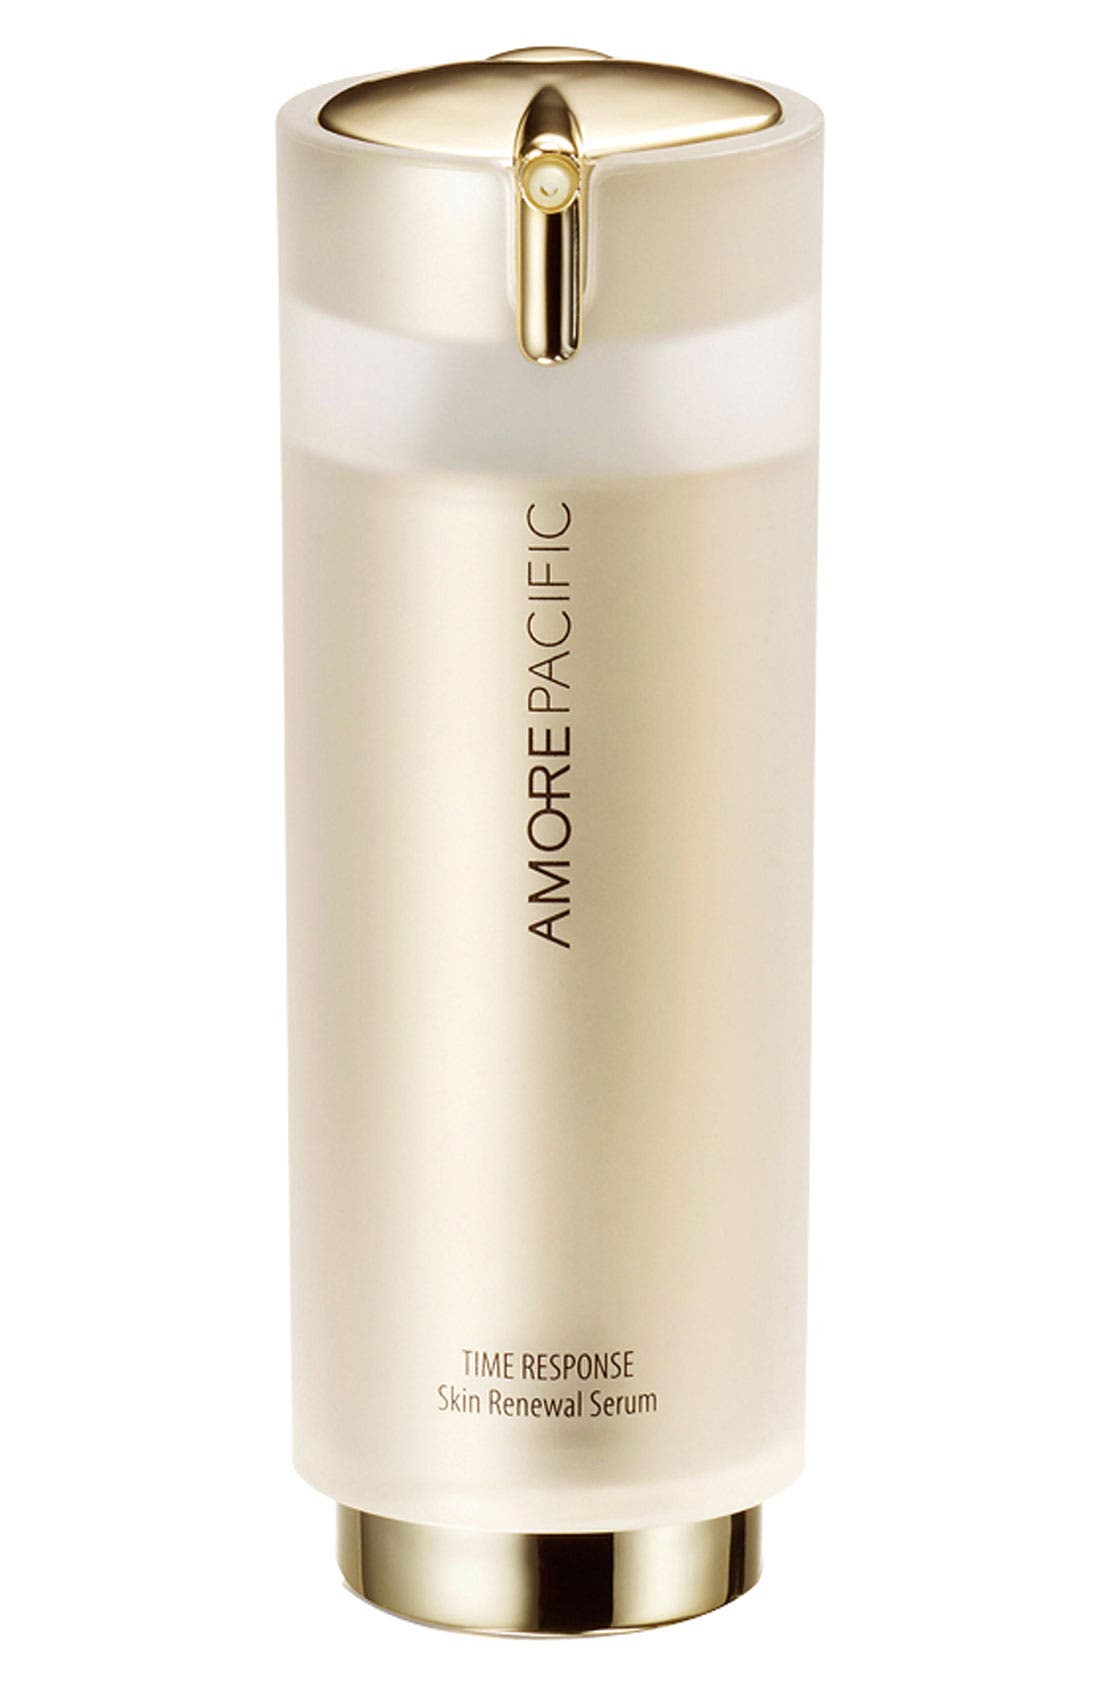 AMOREPACIFIC Time Response Skin Renewal Serum